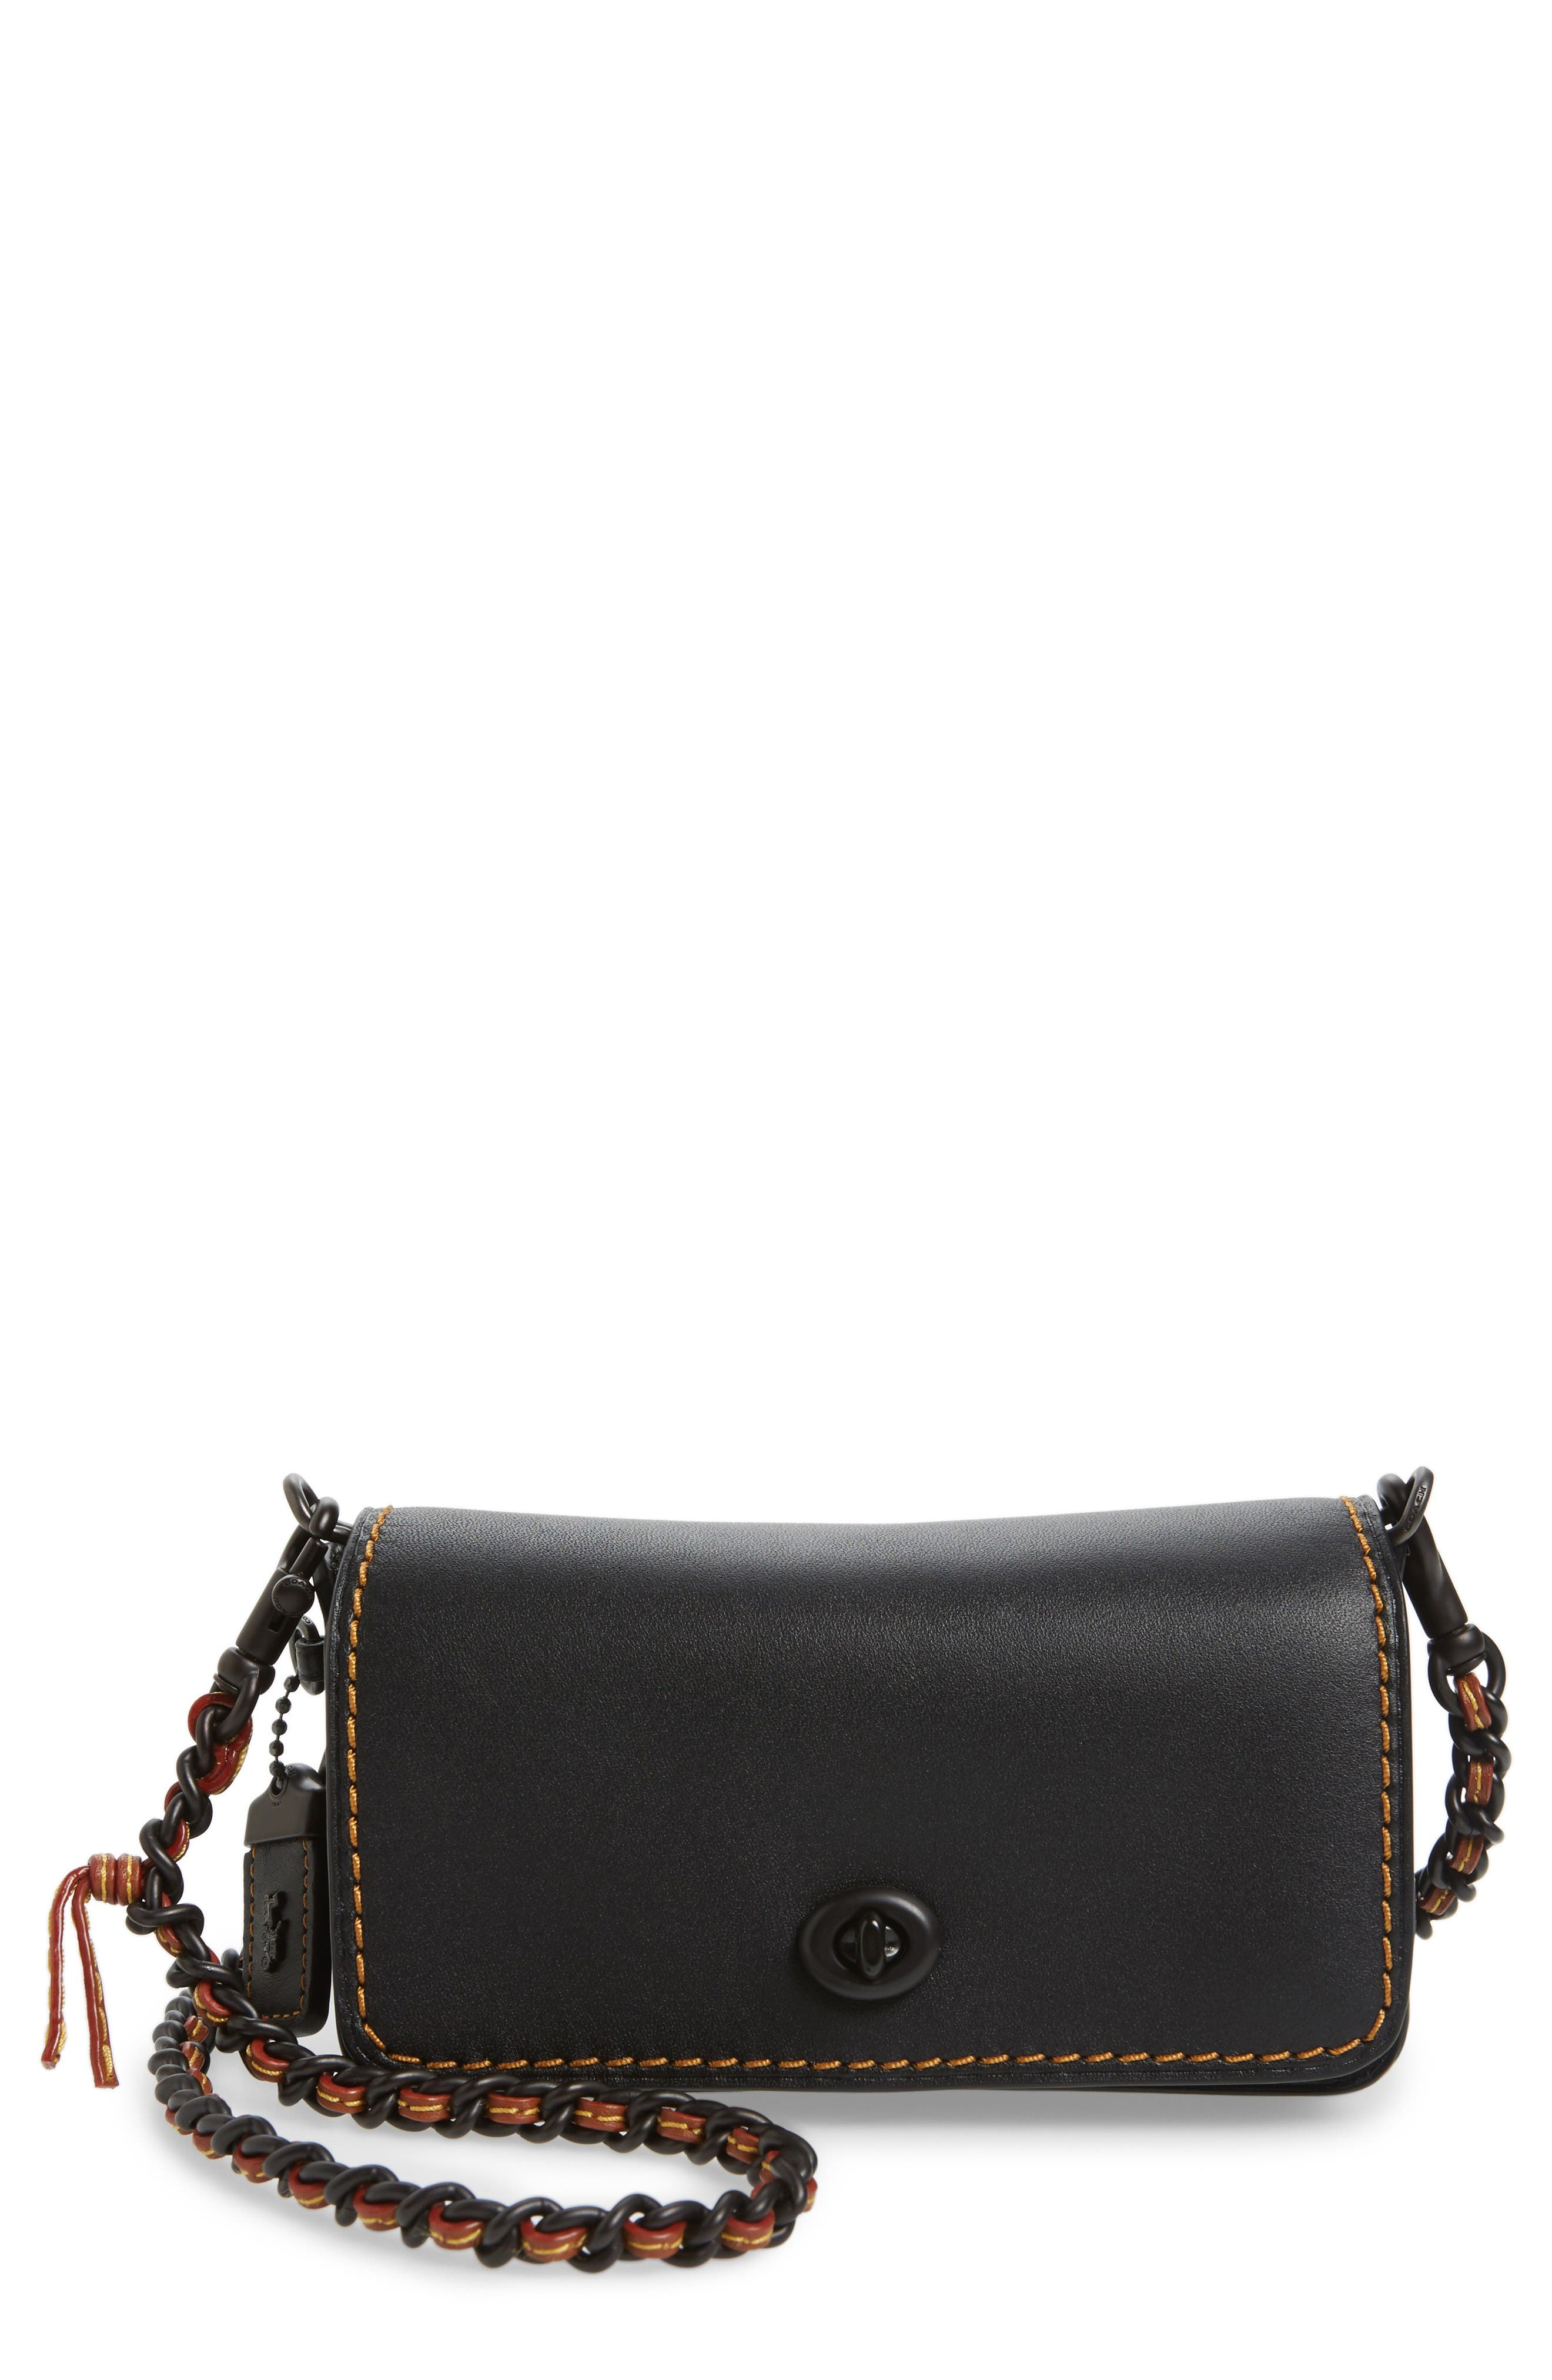 Main Image - COACH 1941 Dinky 15 Leather Crossbody Bag